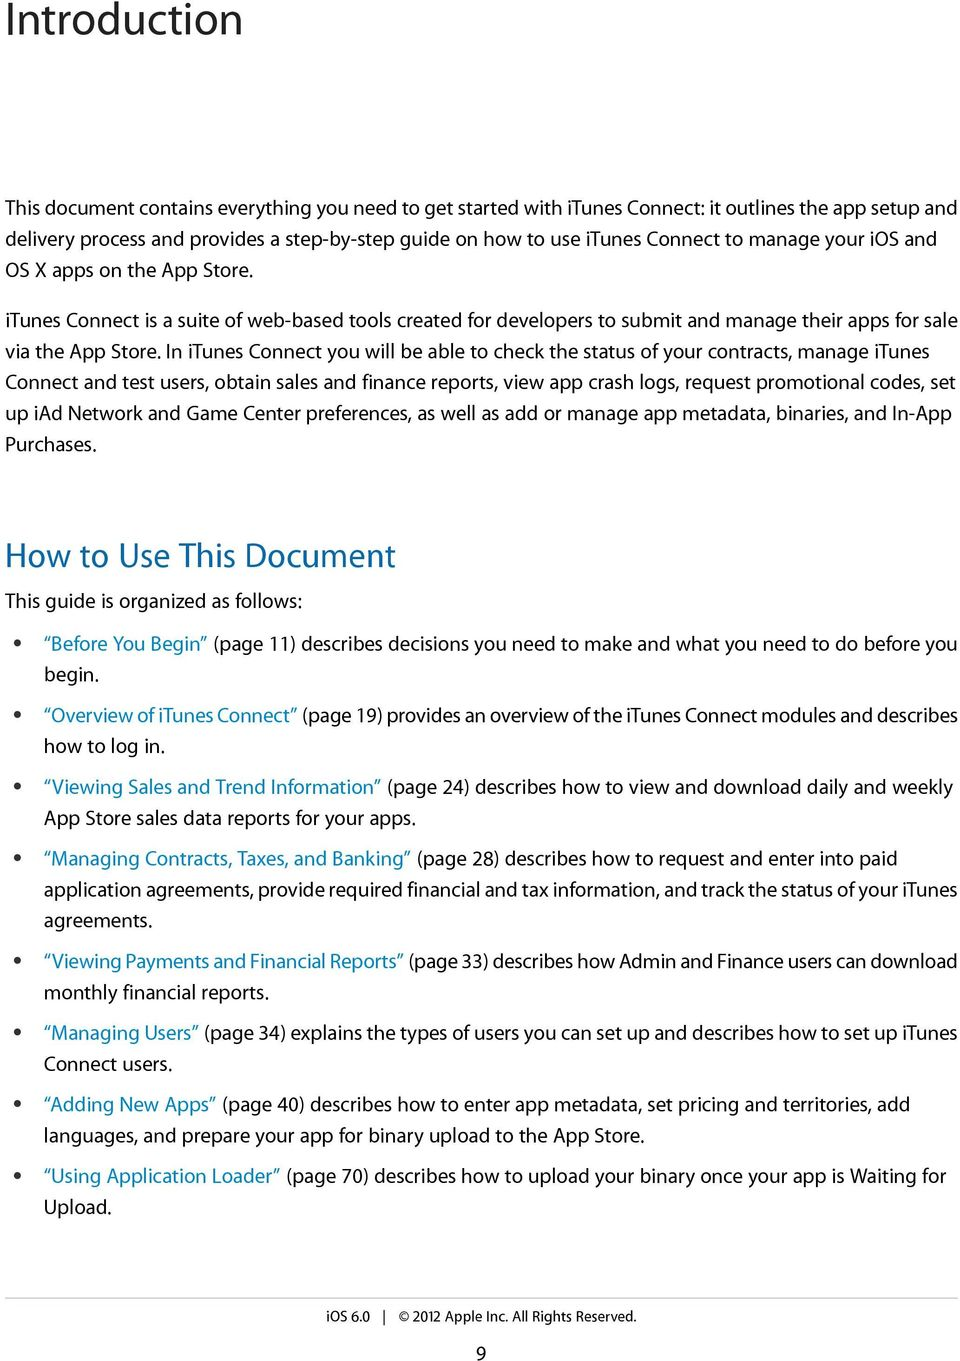 itunes connect developer guide pdf rh docplayer net iTunes Codes iTunes Help